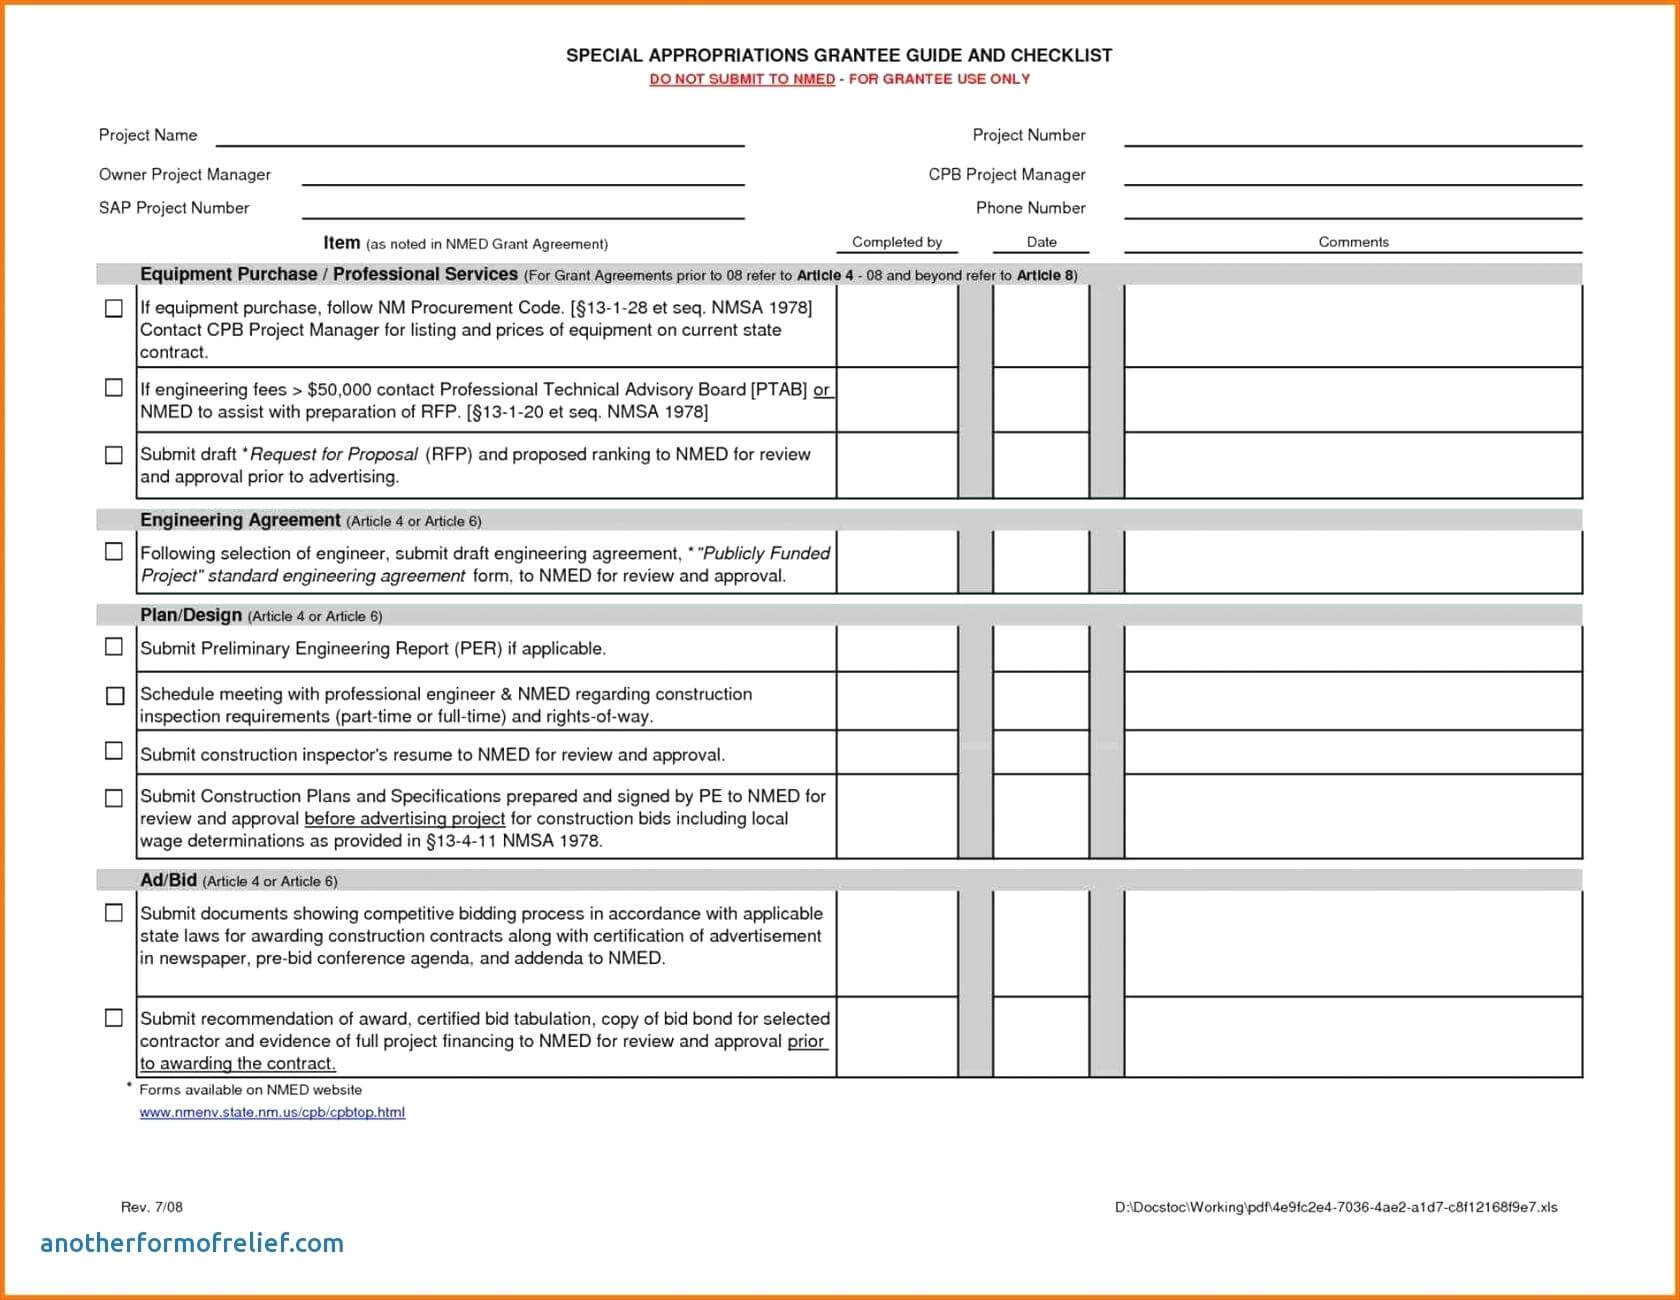 009 Checklist For Project Management Plan Ohs Monthly Report Inside Ohs Monthly Report Template